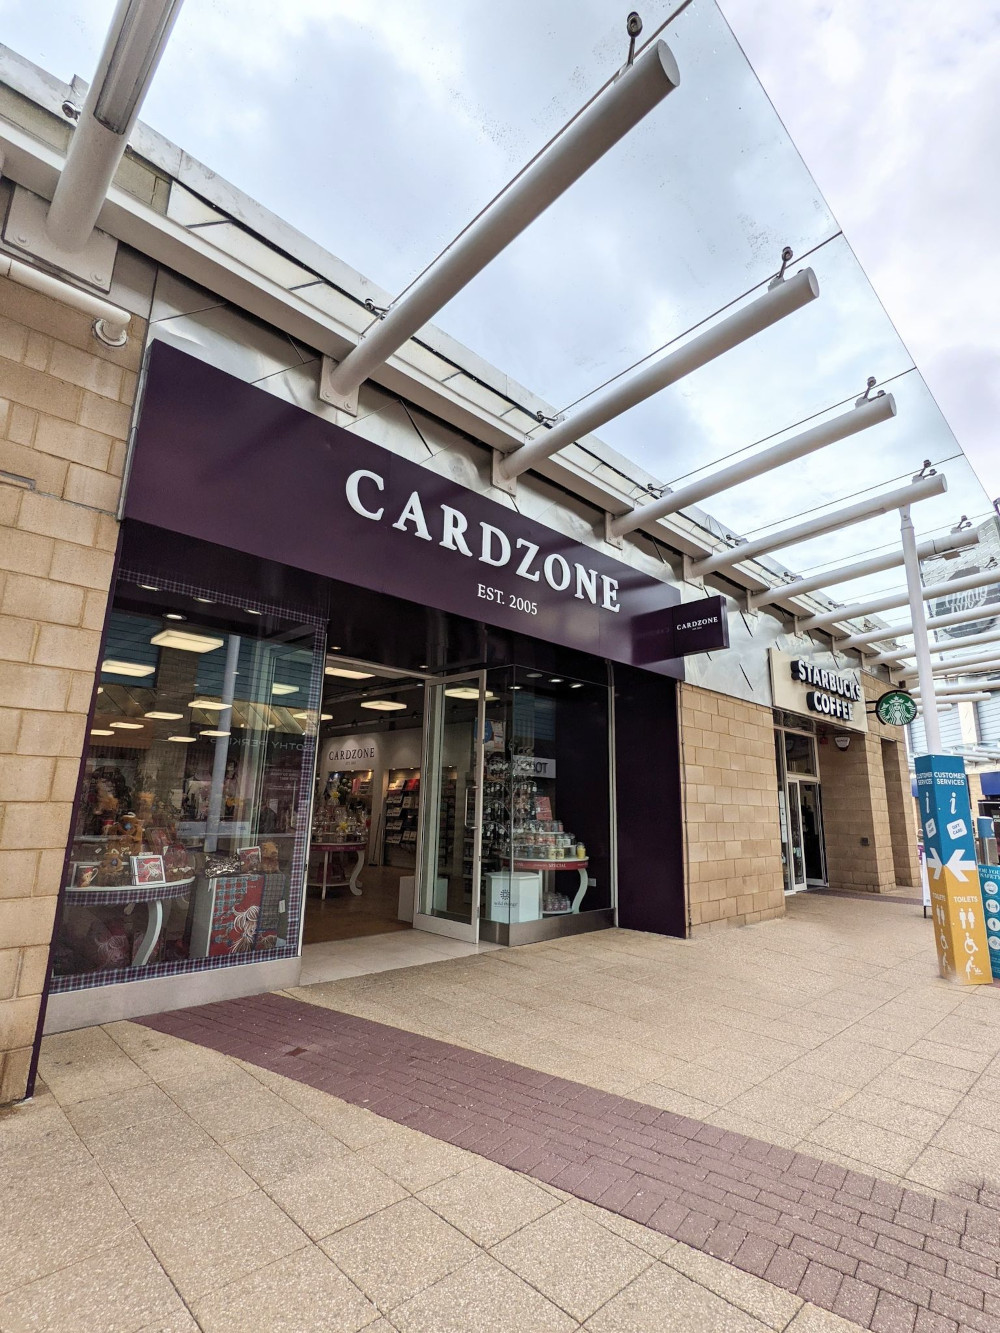 The Cardzone that alledgedly sacked a member of staff for 'sexualising herself' - Consumer News Scotland